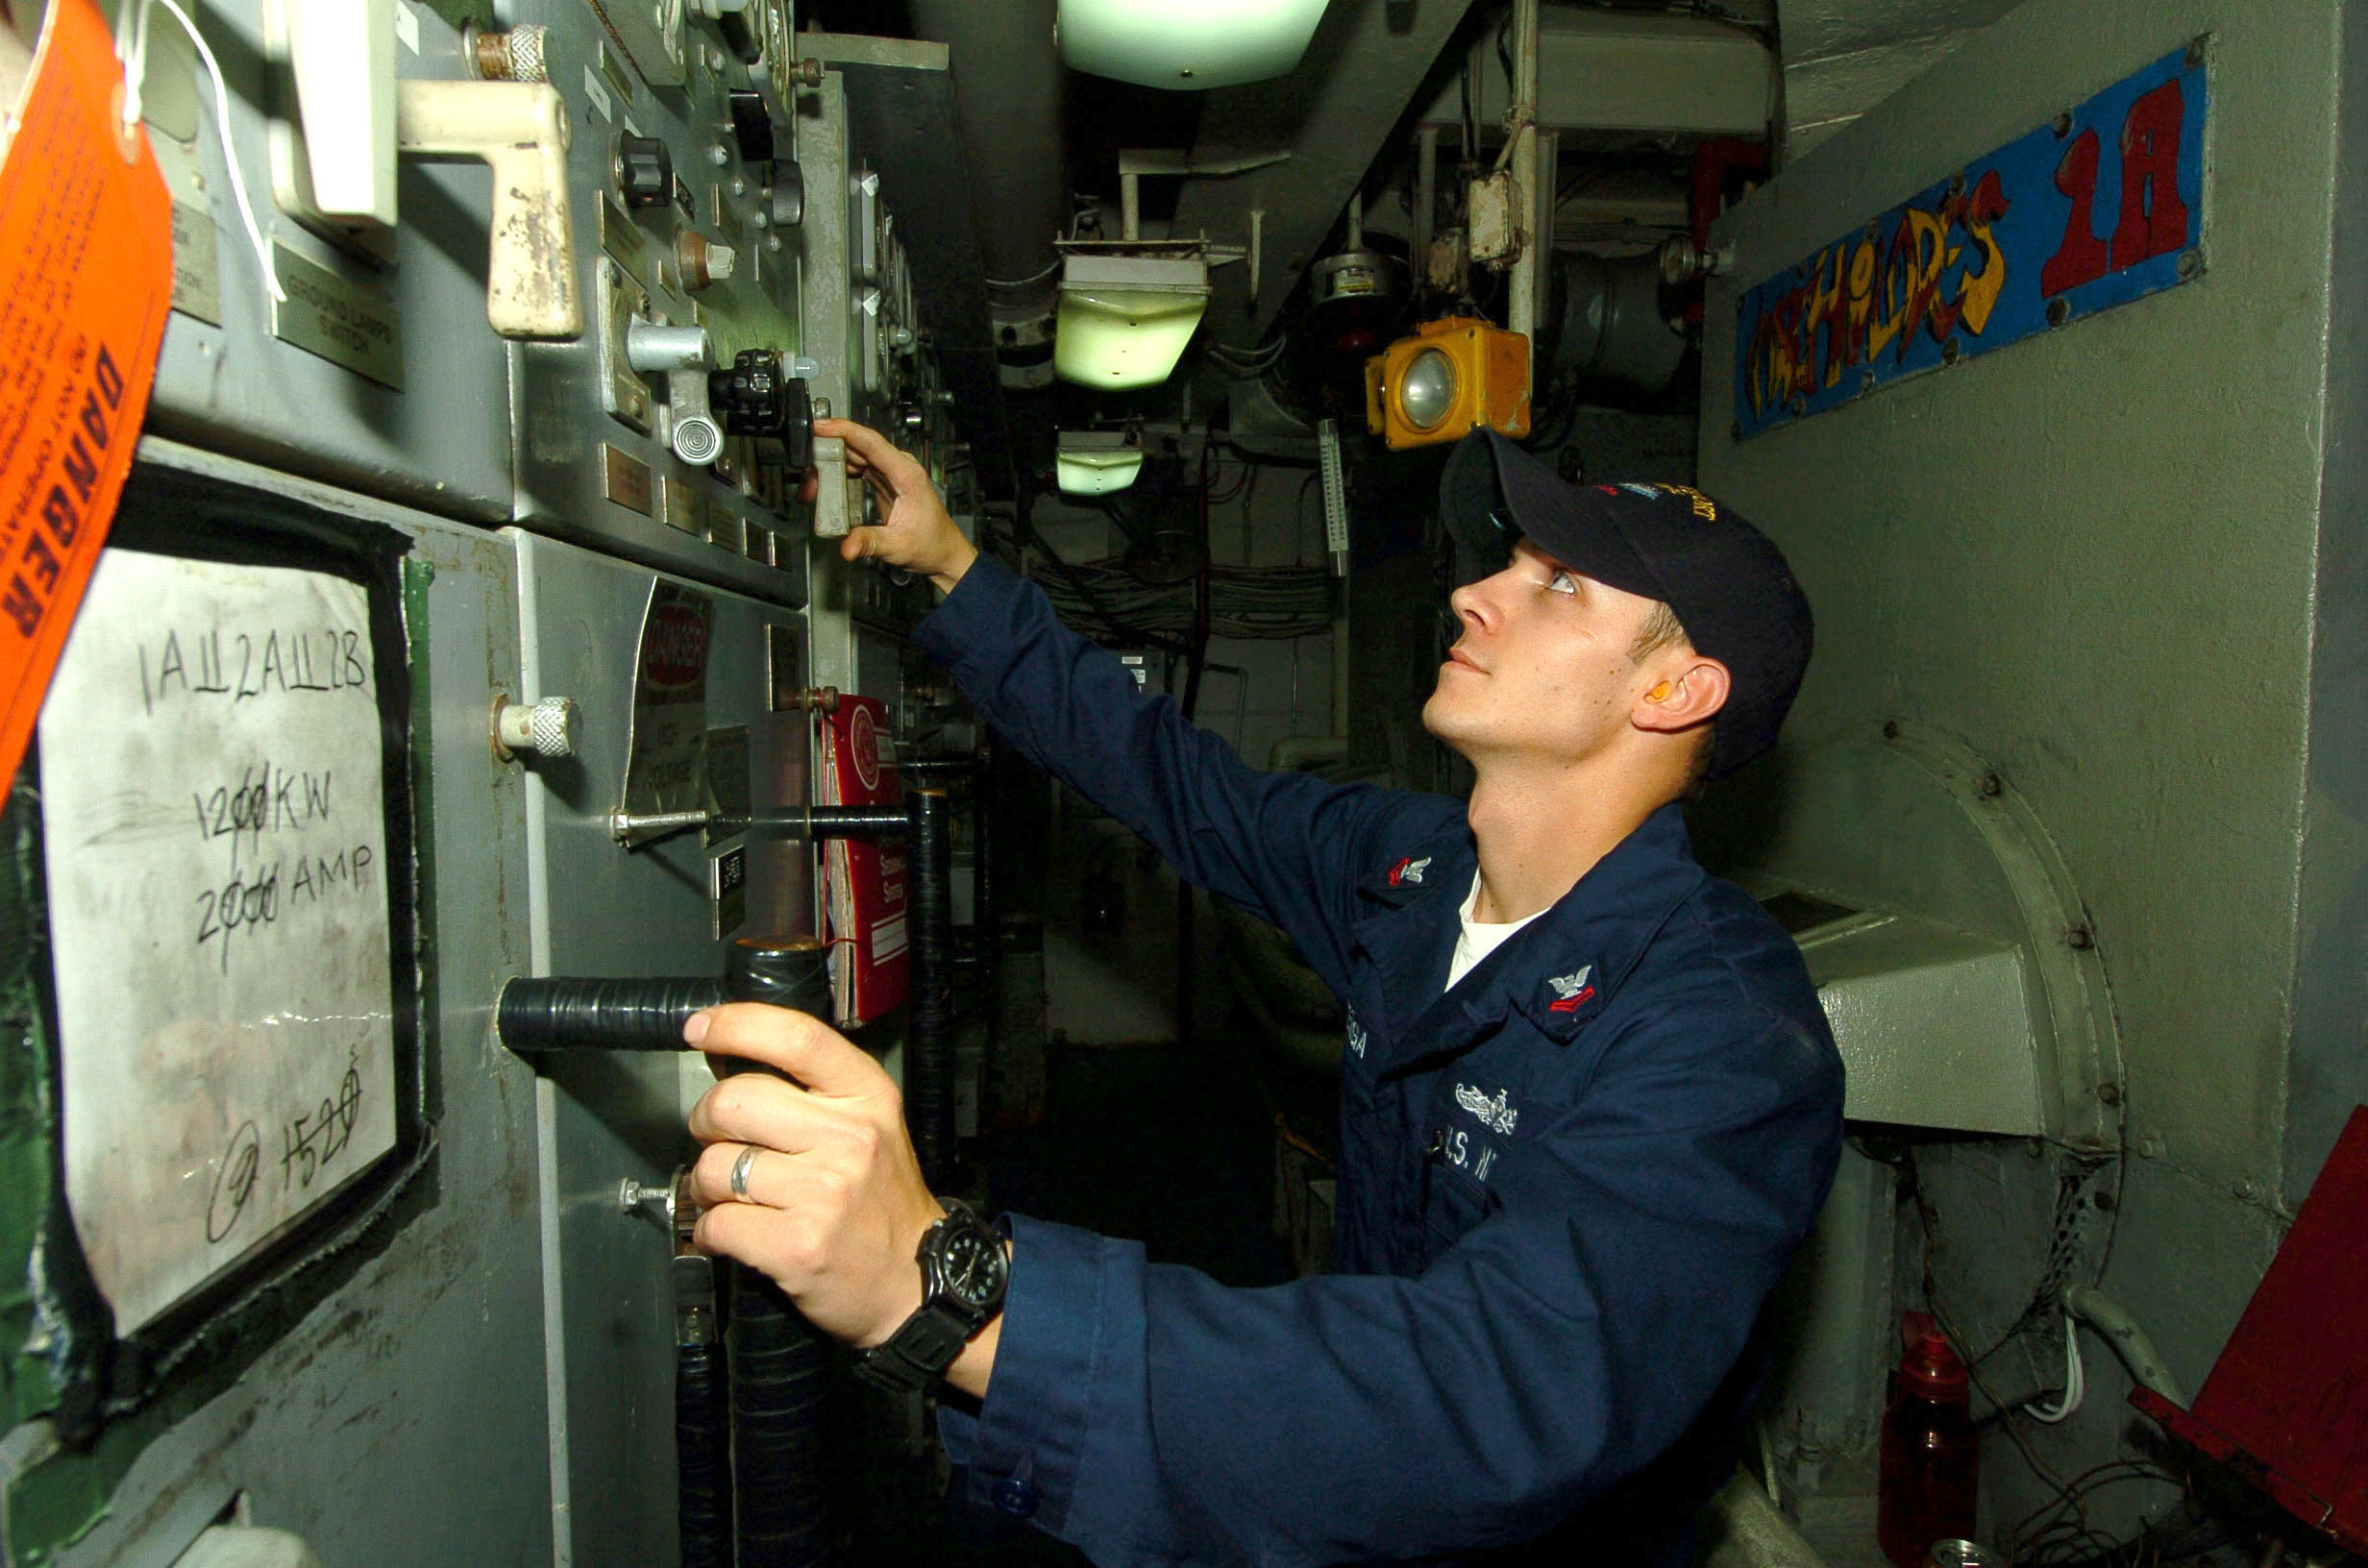 File:US Navy 061102-N-4236E-013 Electrician's Mate 2nd Class ...